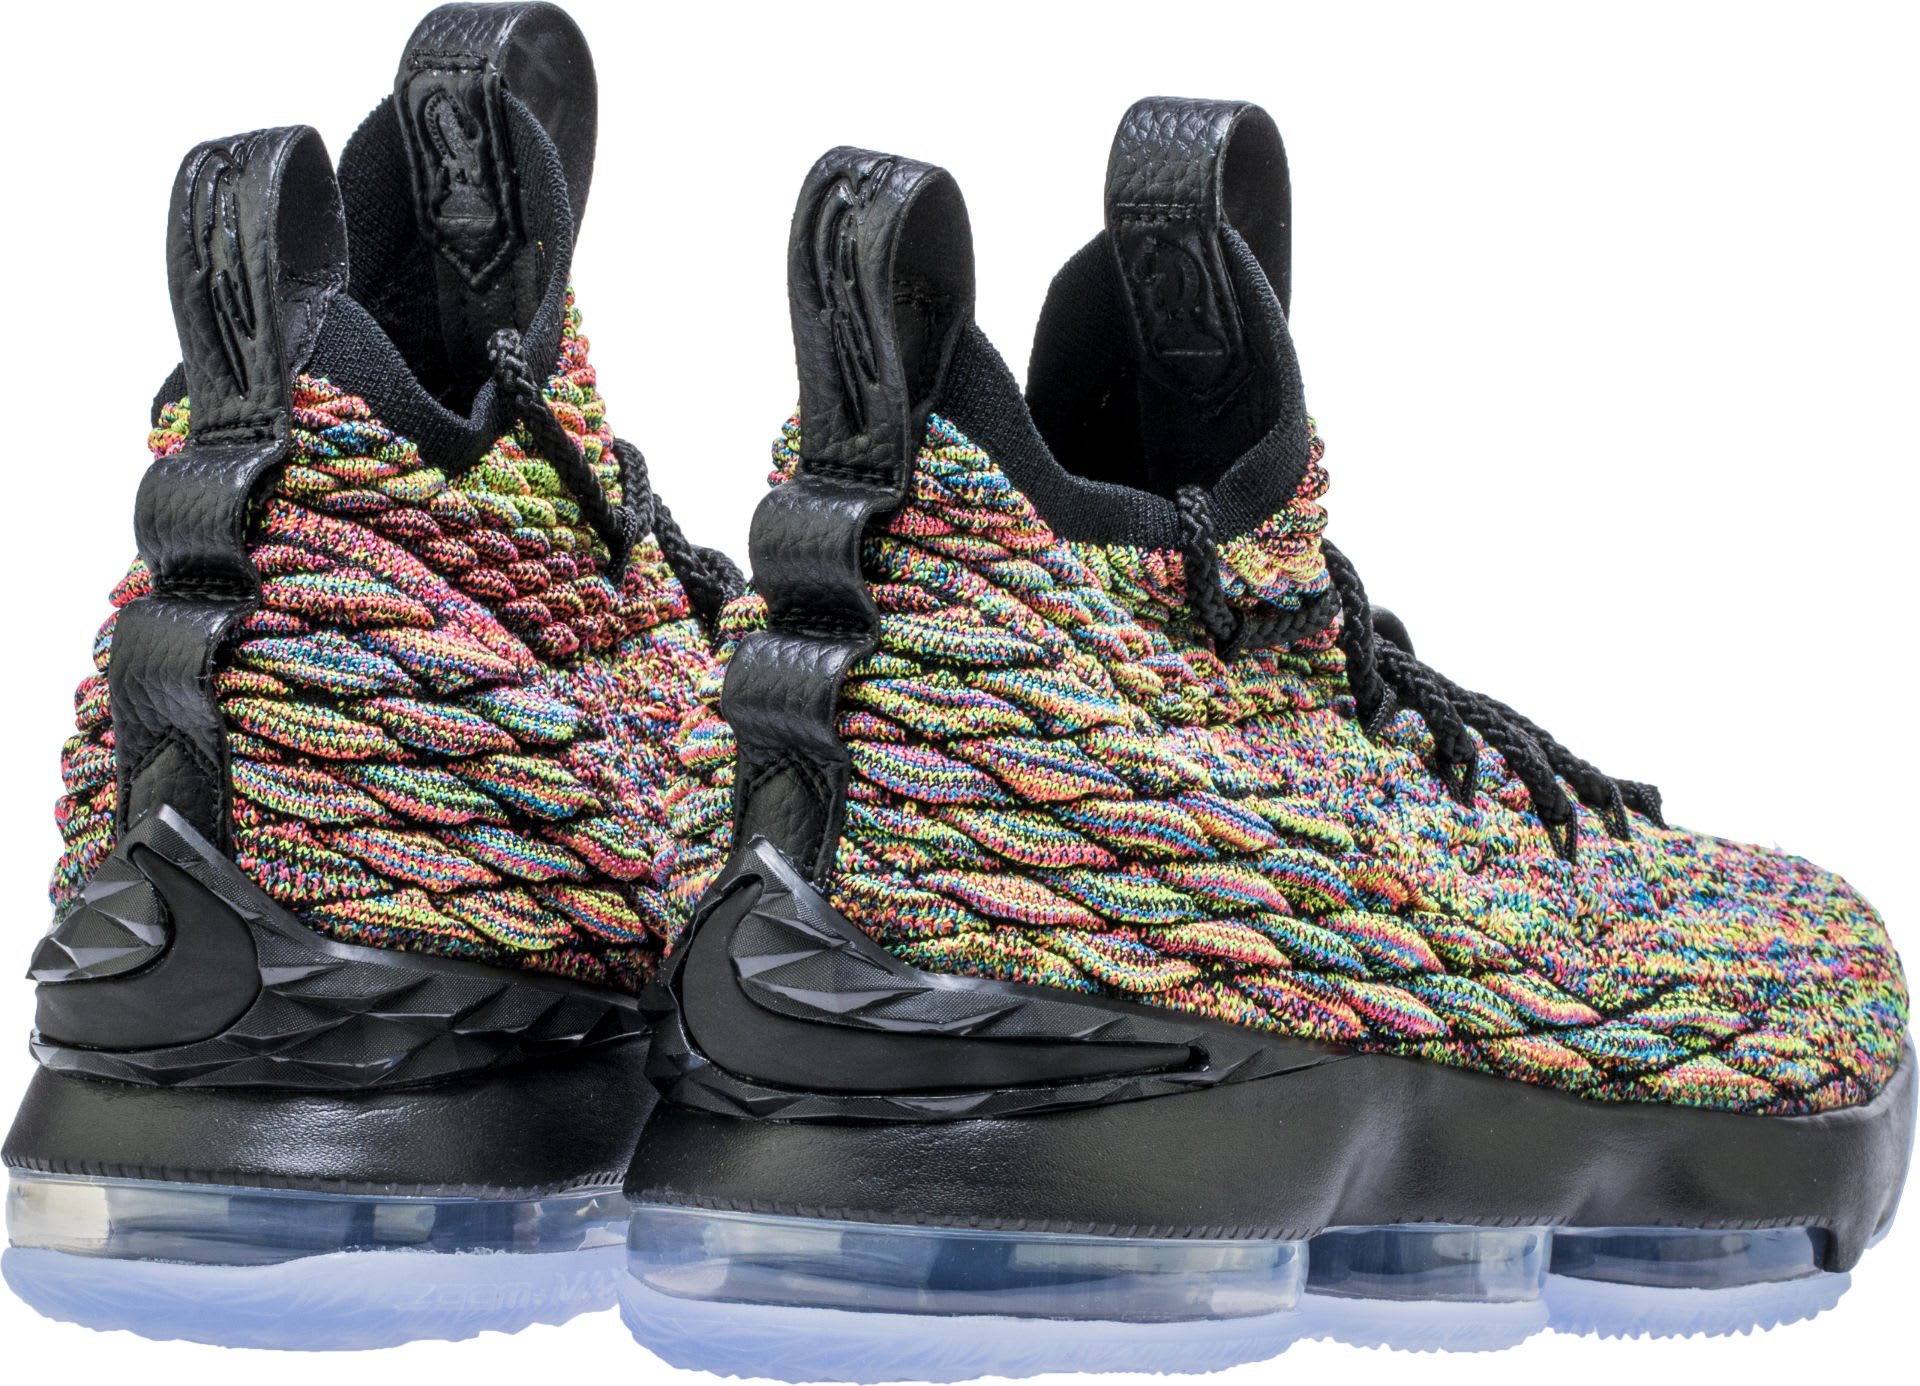 best authentic b80d5 7d4c9 Fruity Pebbles' Nike LeBron 15s Also Releasing in Black ...